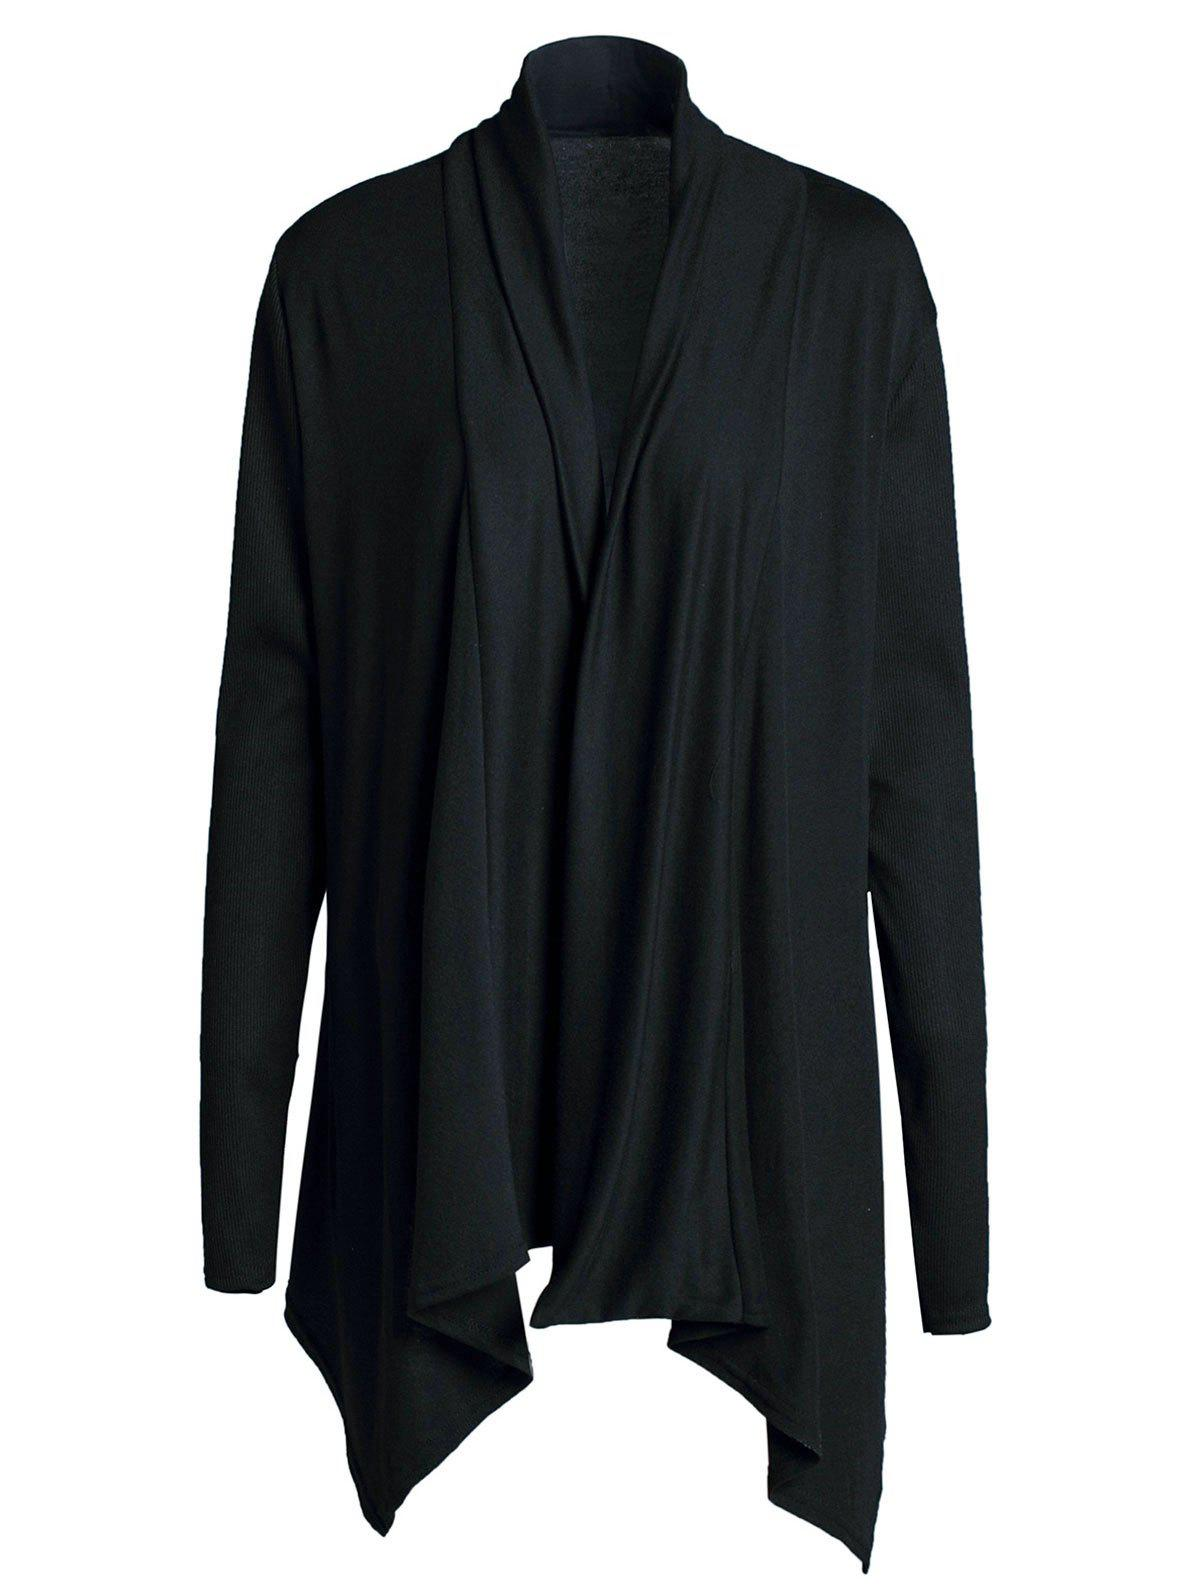 Shops Chic Turn-Down Neck Long Sleeve Pure Color Women's Cardigan